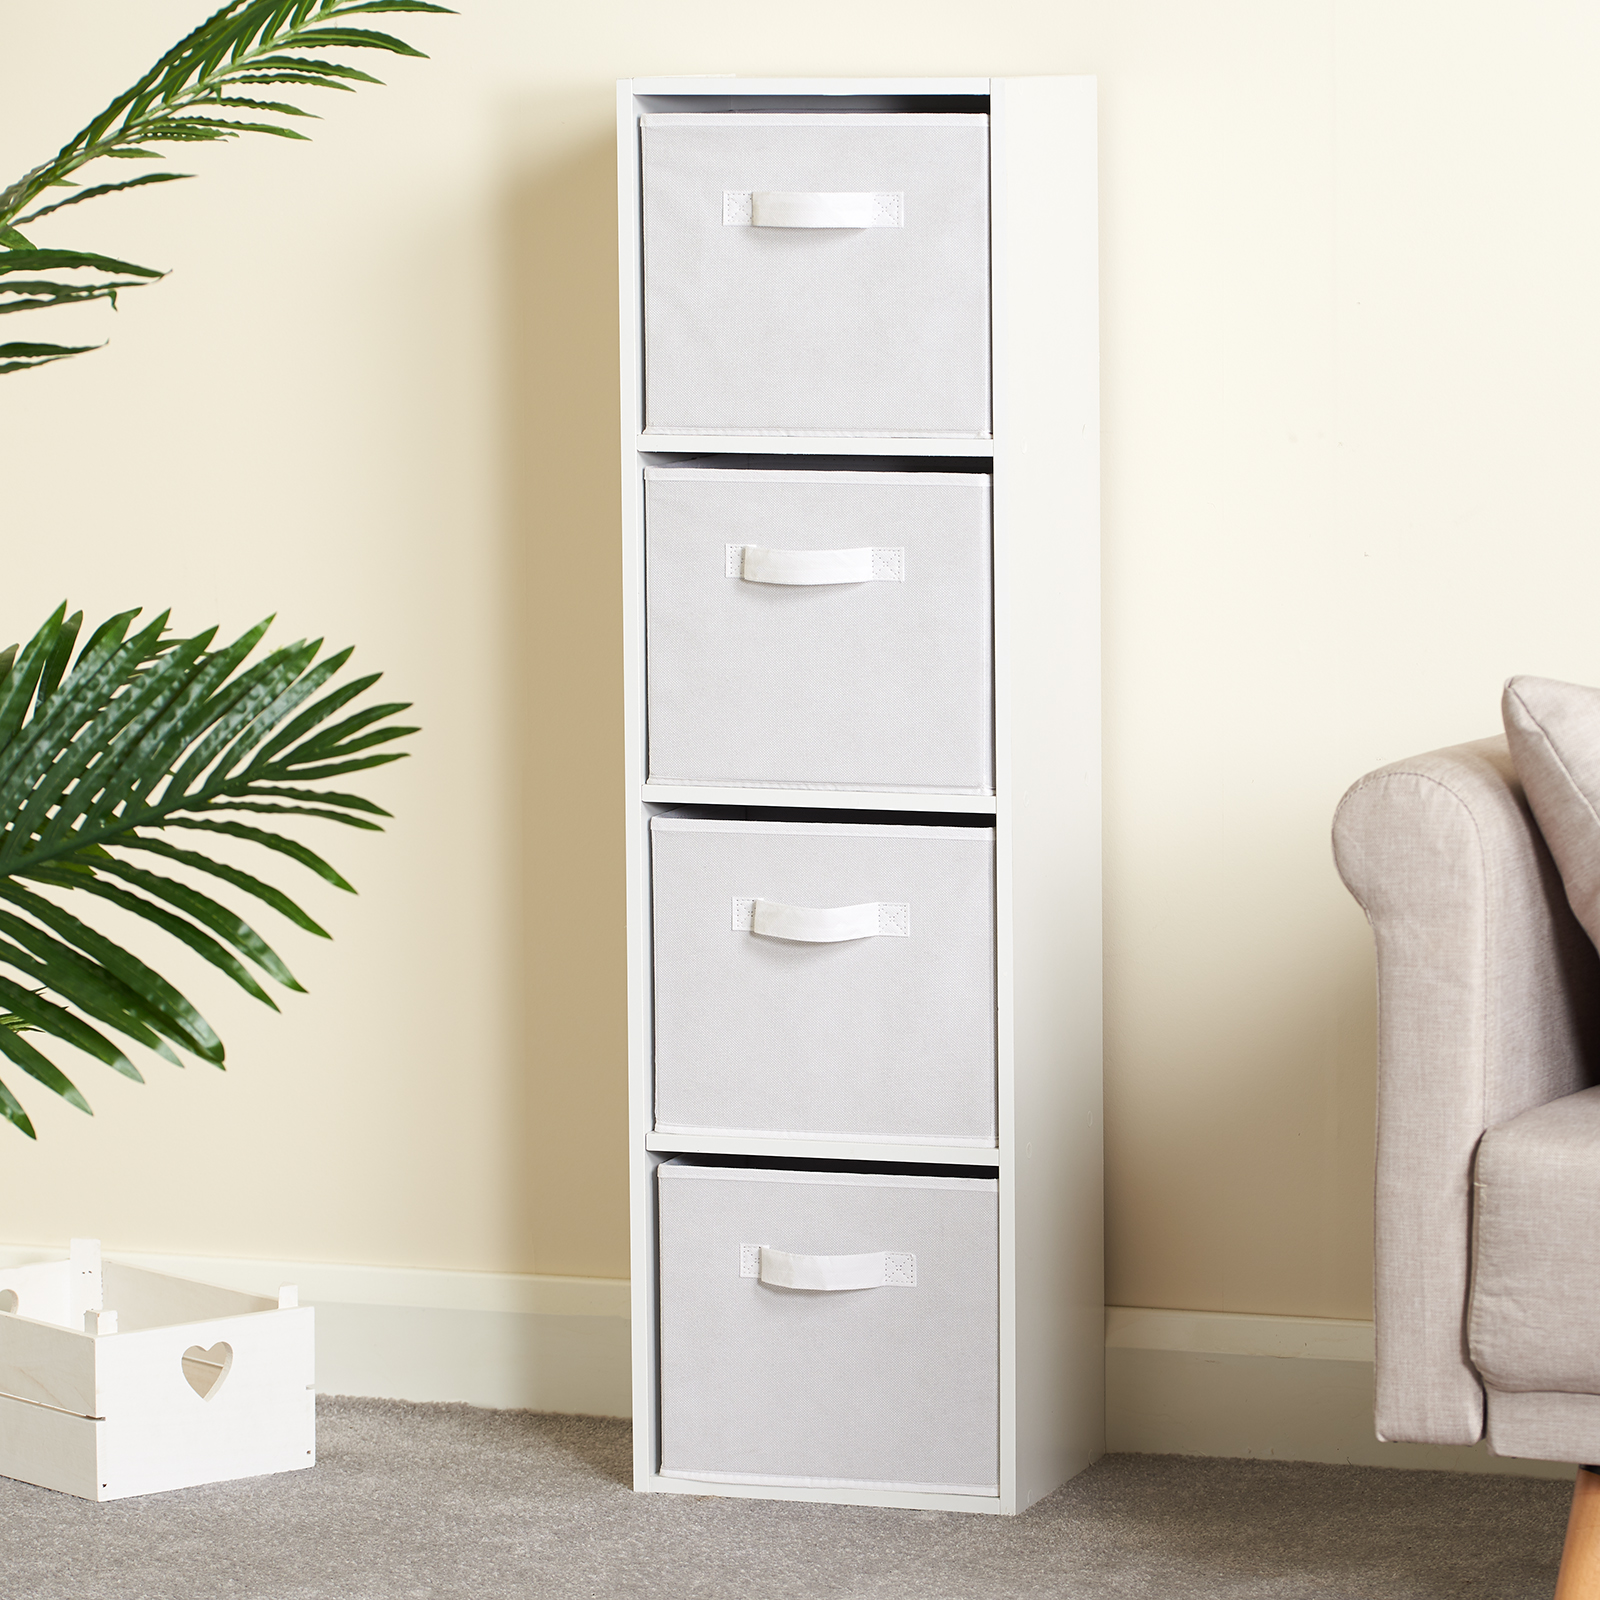 Hartleys-4-Tier-White-Bookcase-Wooden-Display-Shelving-Unit-amp-Fabric-Storage-Box thumbnail 41